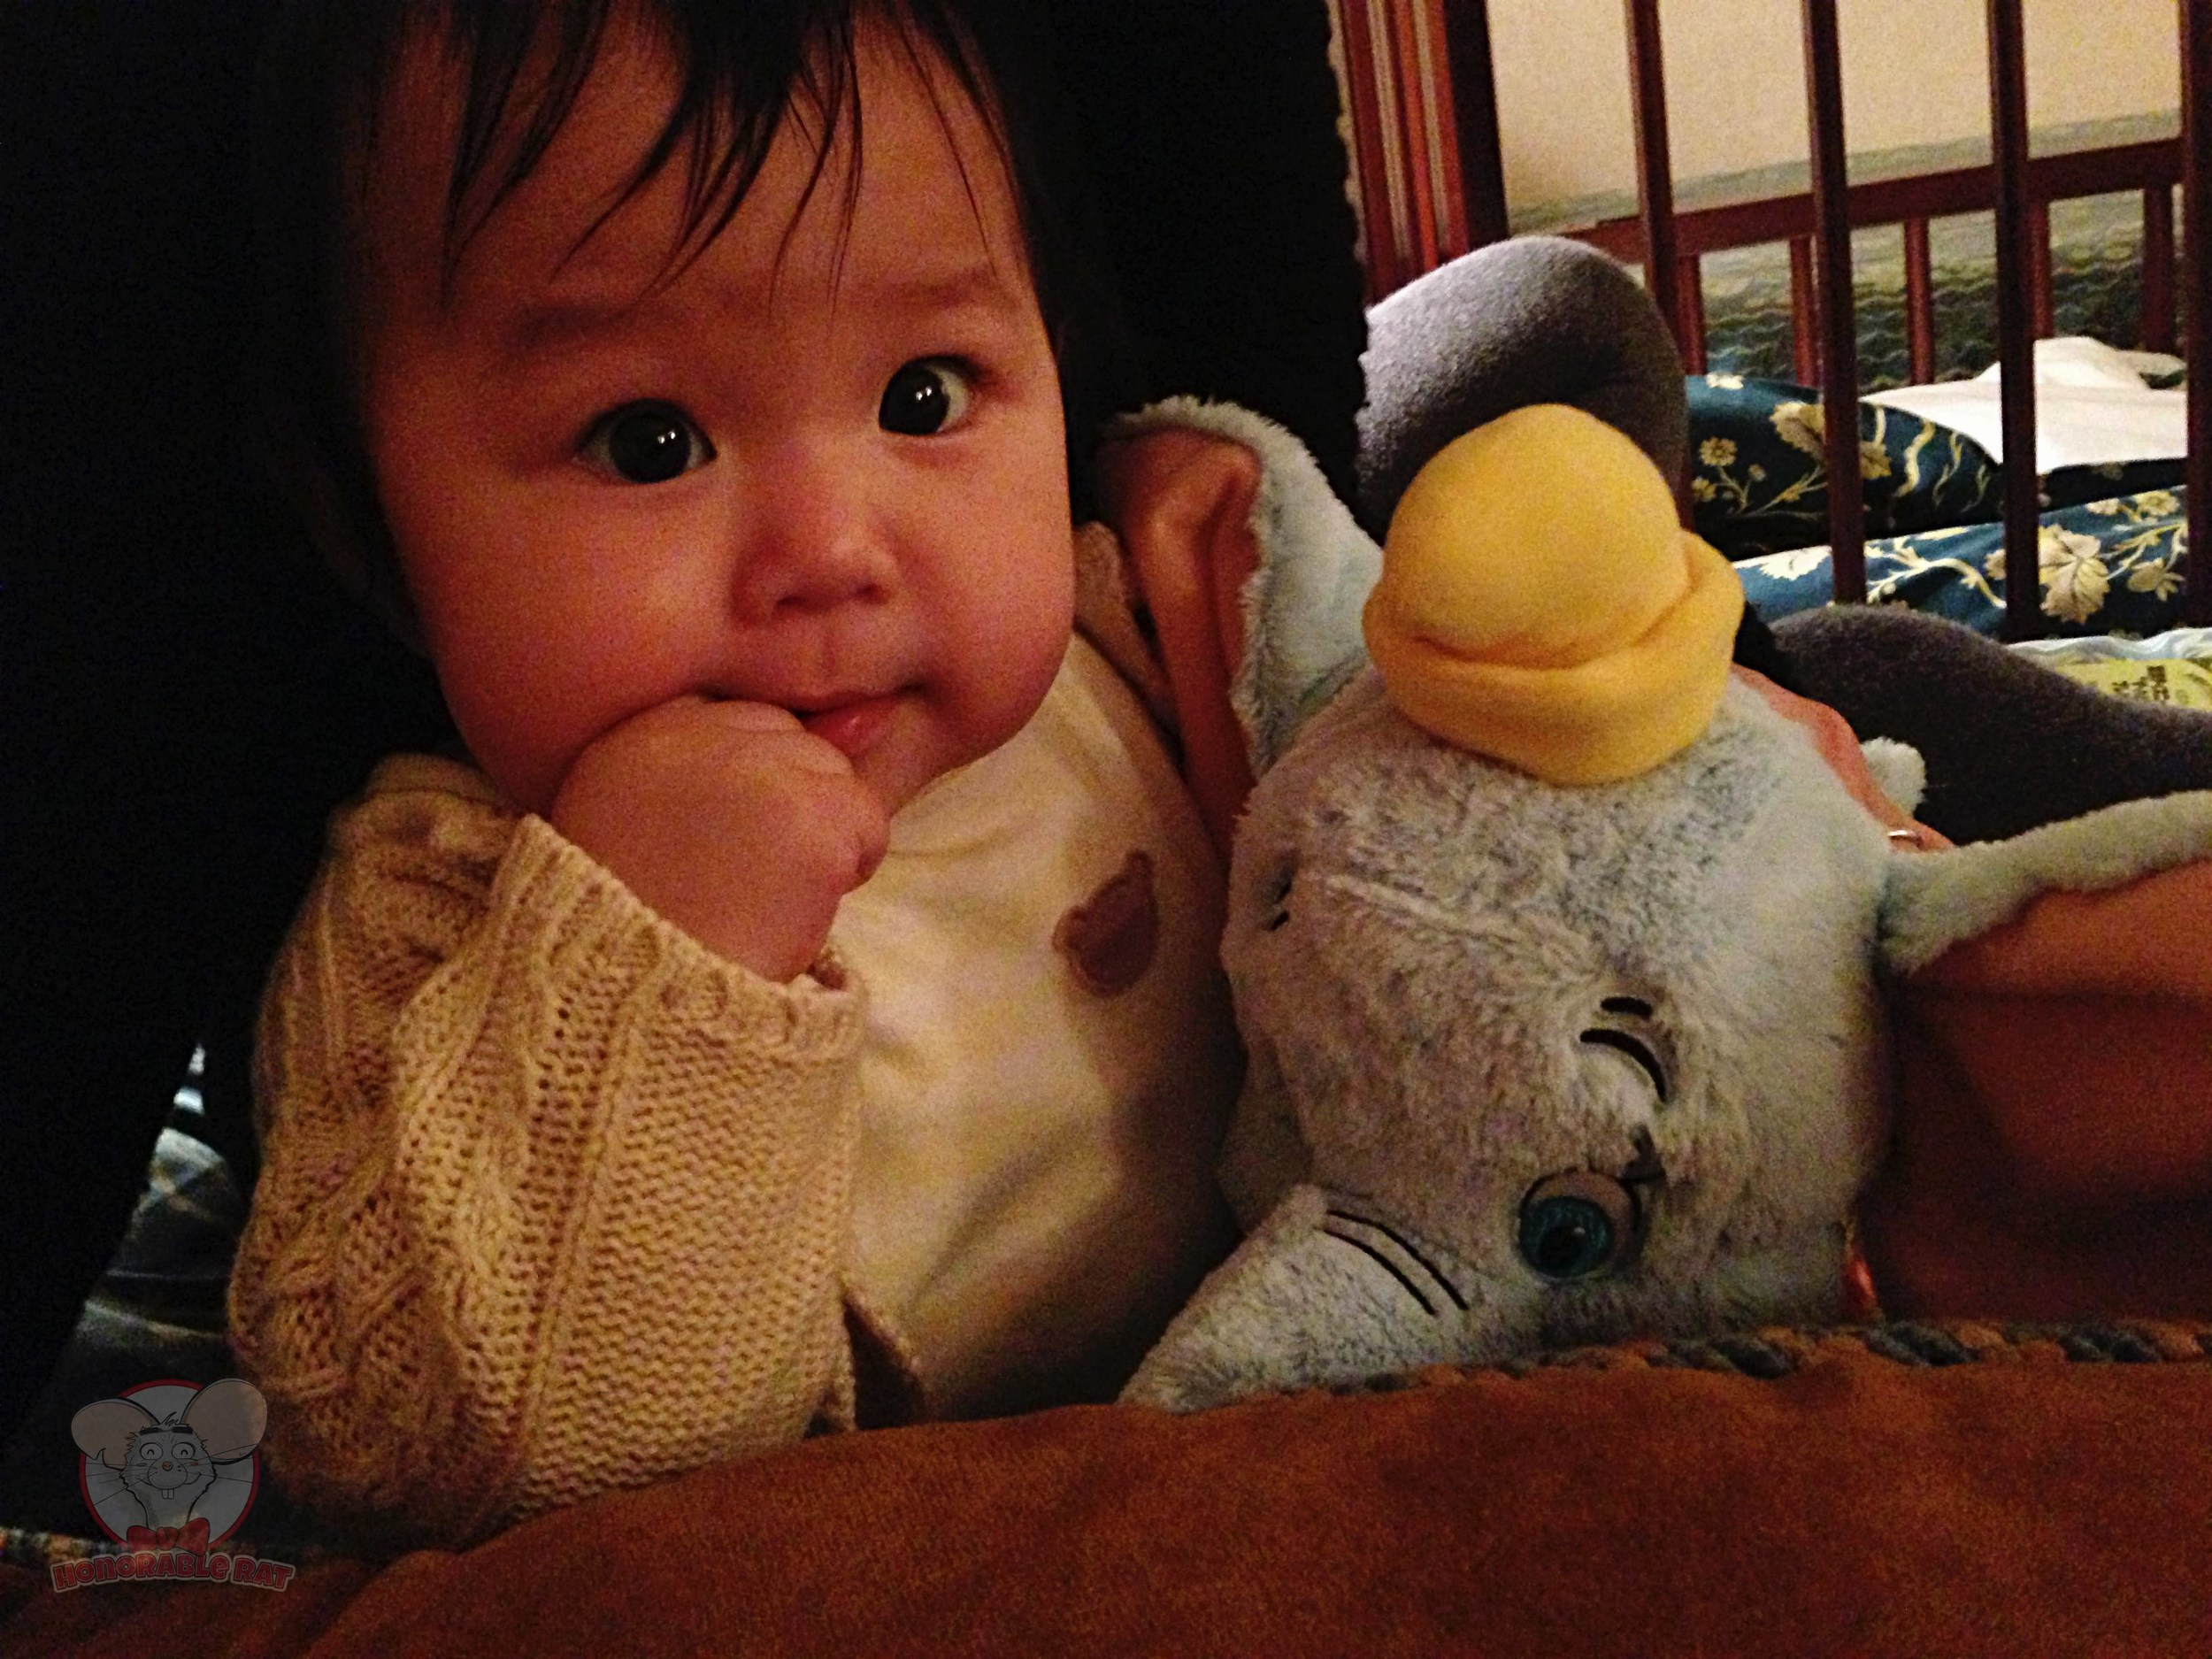 Mahina with her new Dumbo soft toy